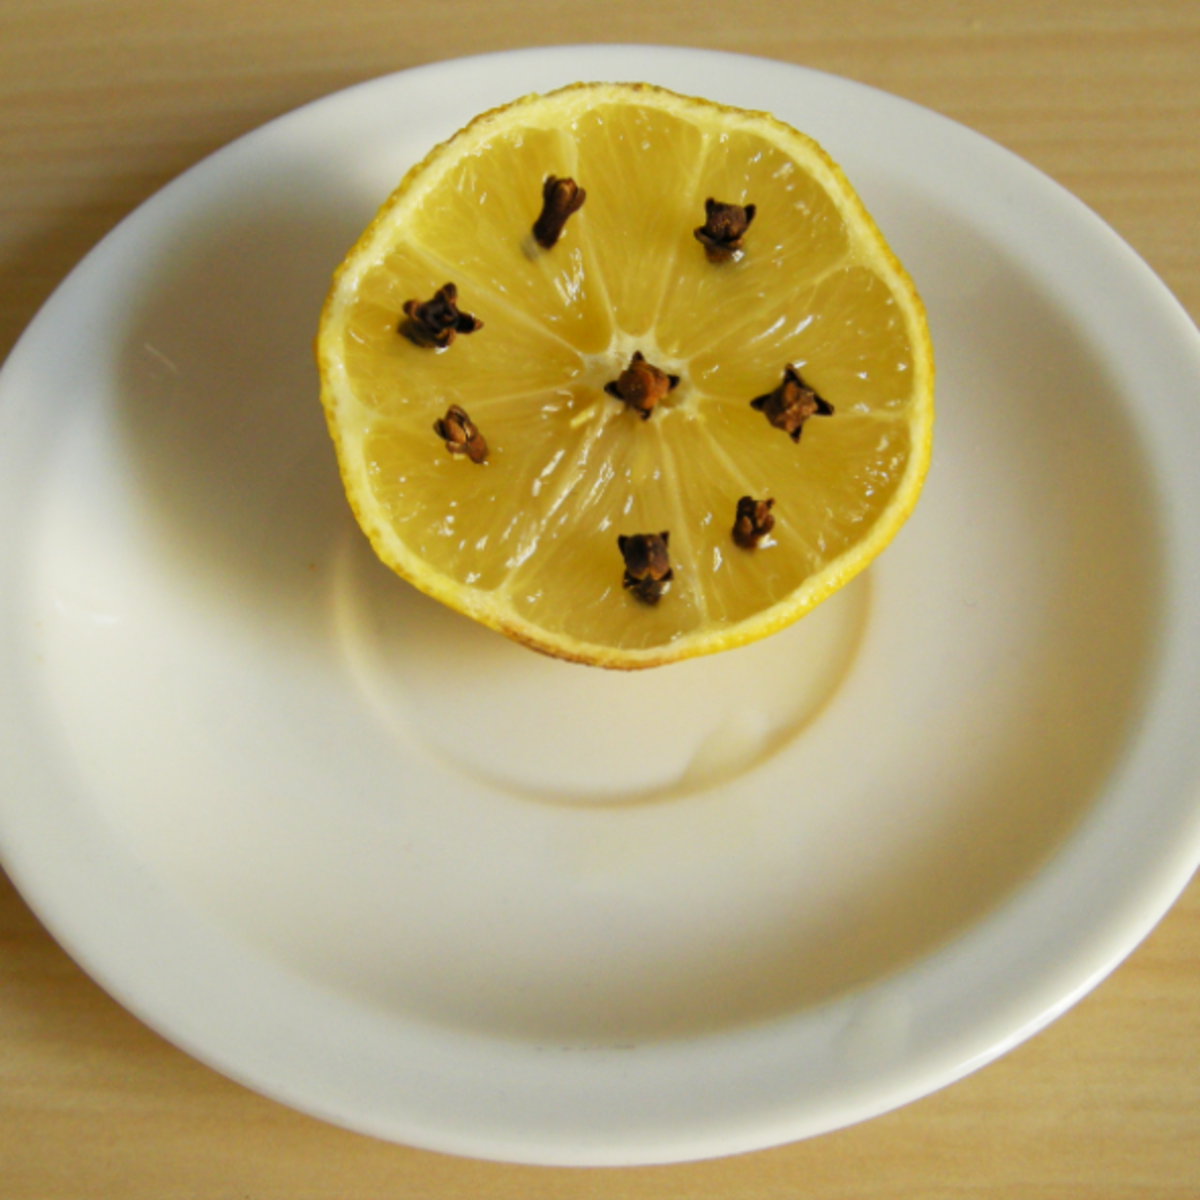 Lemon and cloves to repel flies